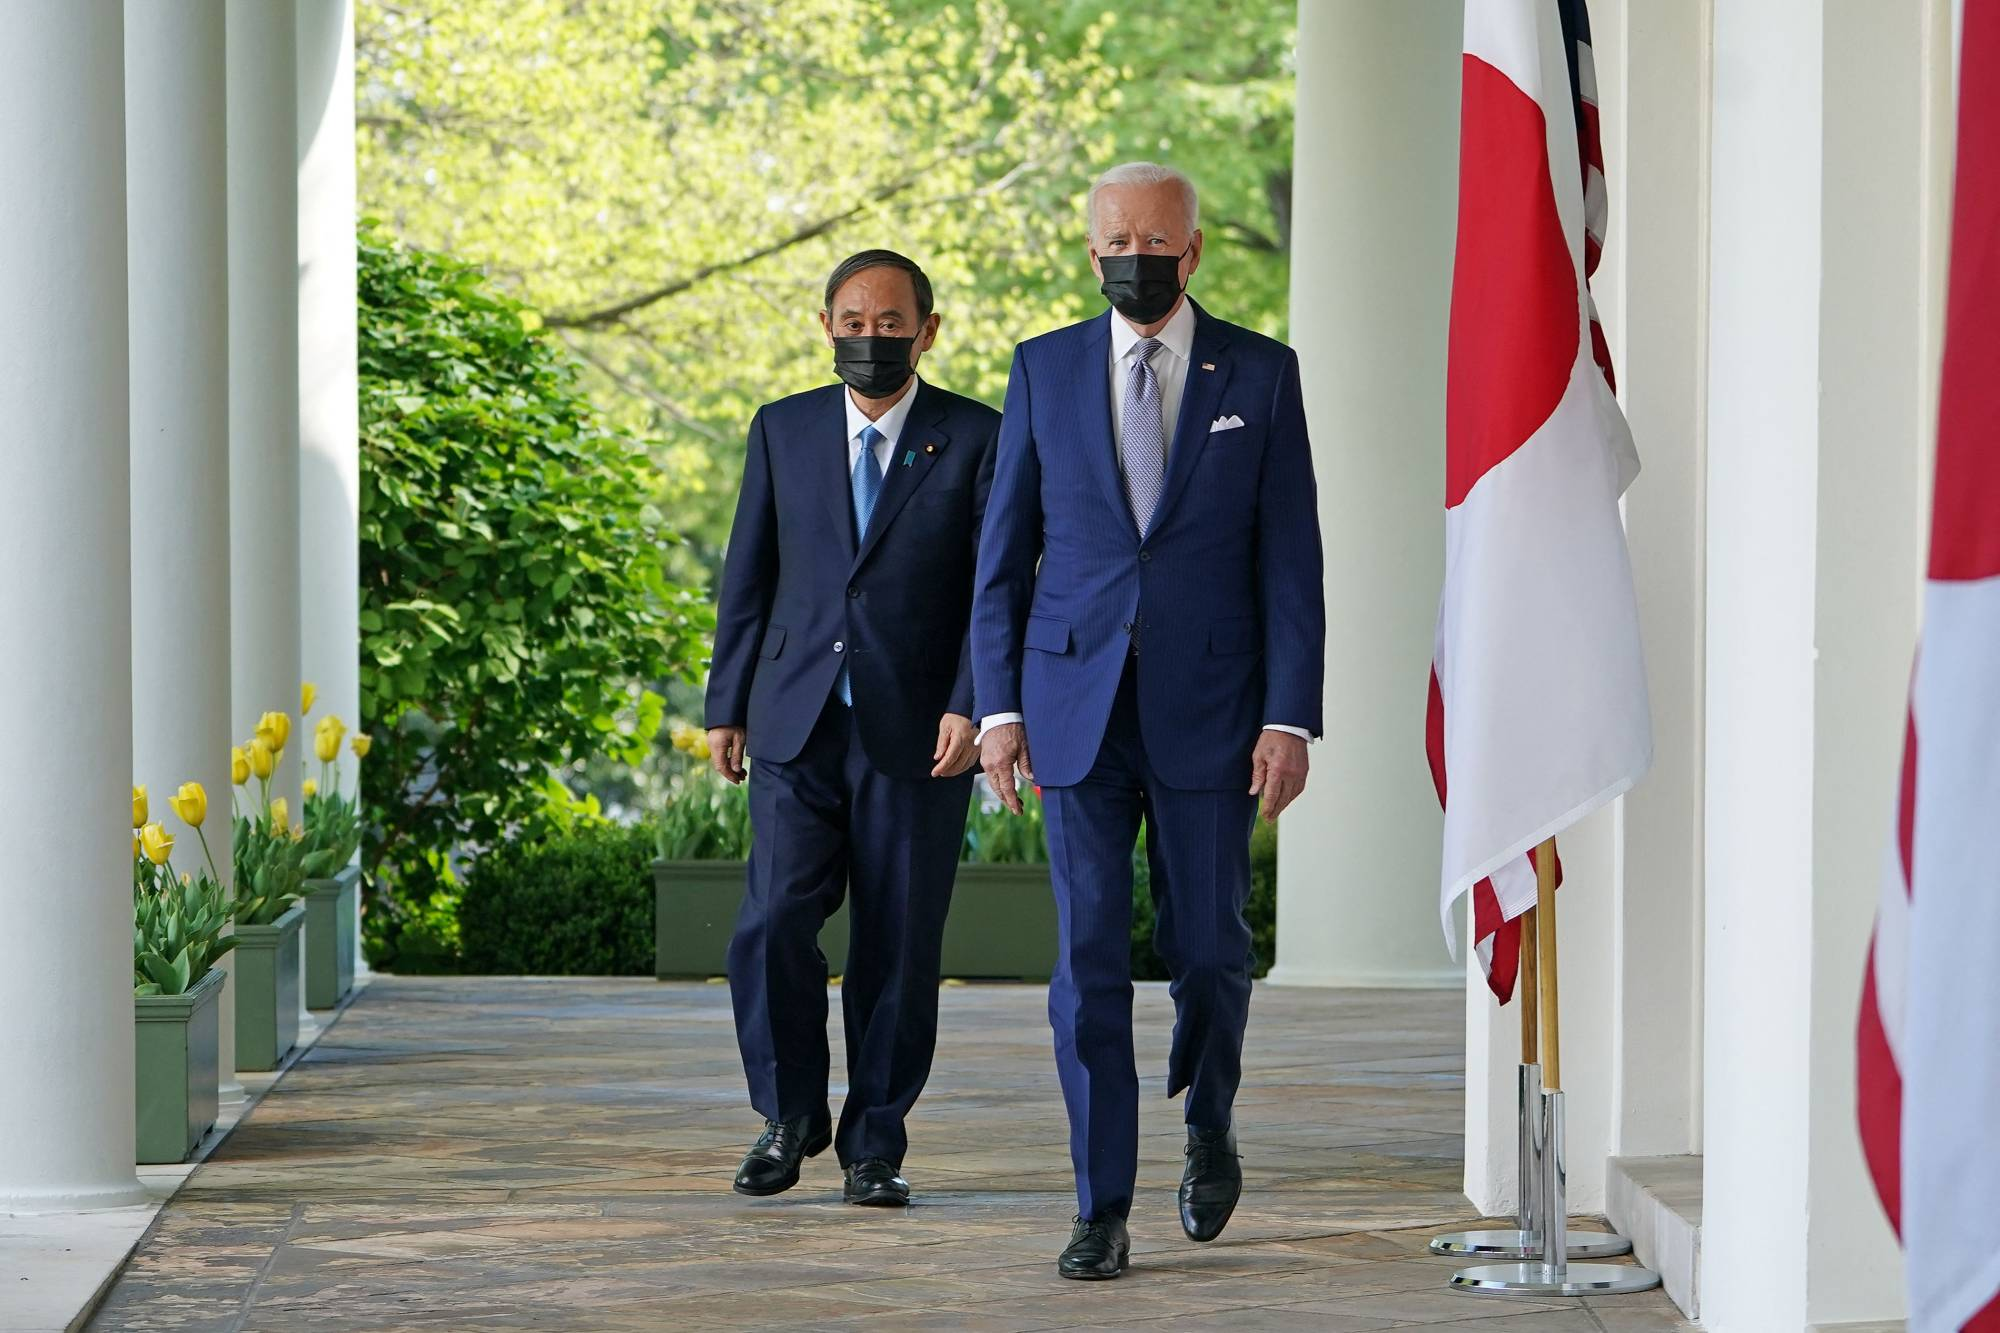 U.S. President Joe Biden and Prime Minister Yoshihide Suga walk to take part in a joint news conference in the Rose Garden of the White House in Washington on Friday. | AFP-JIJI